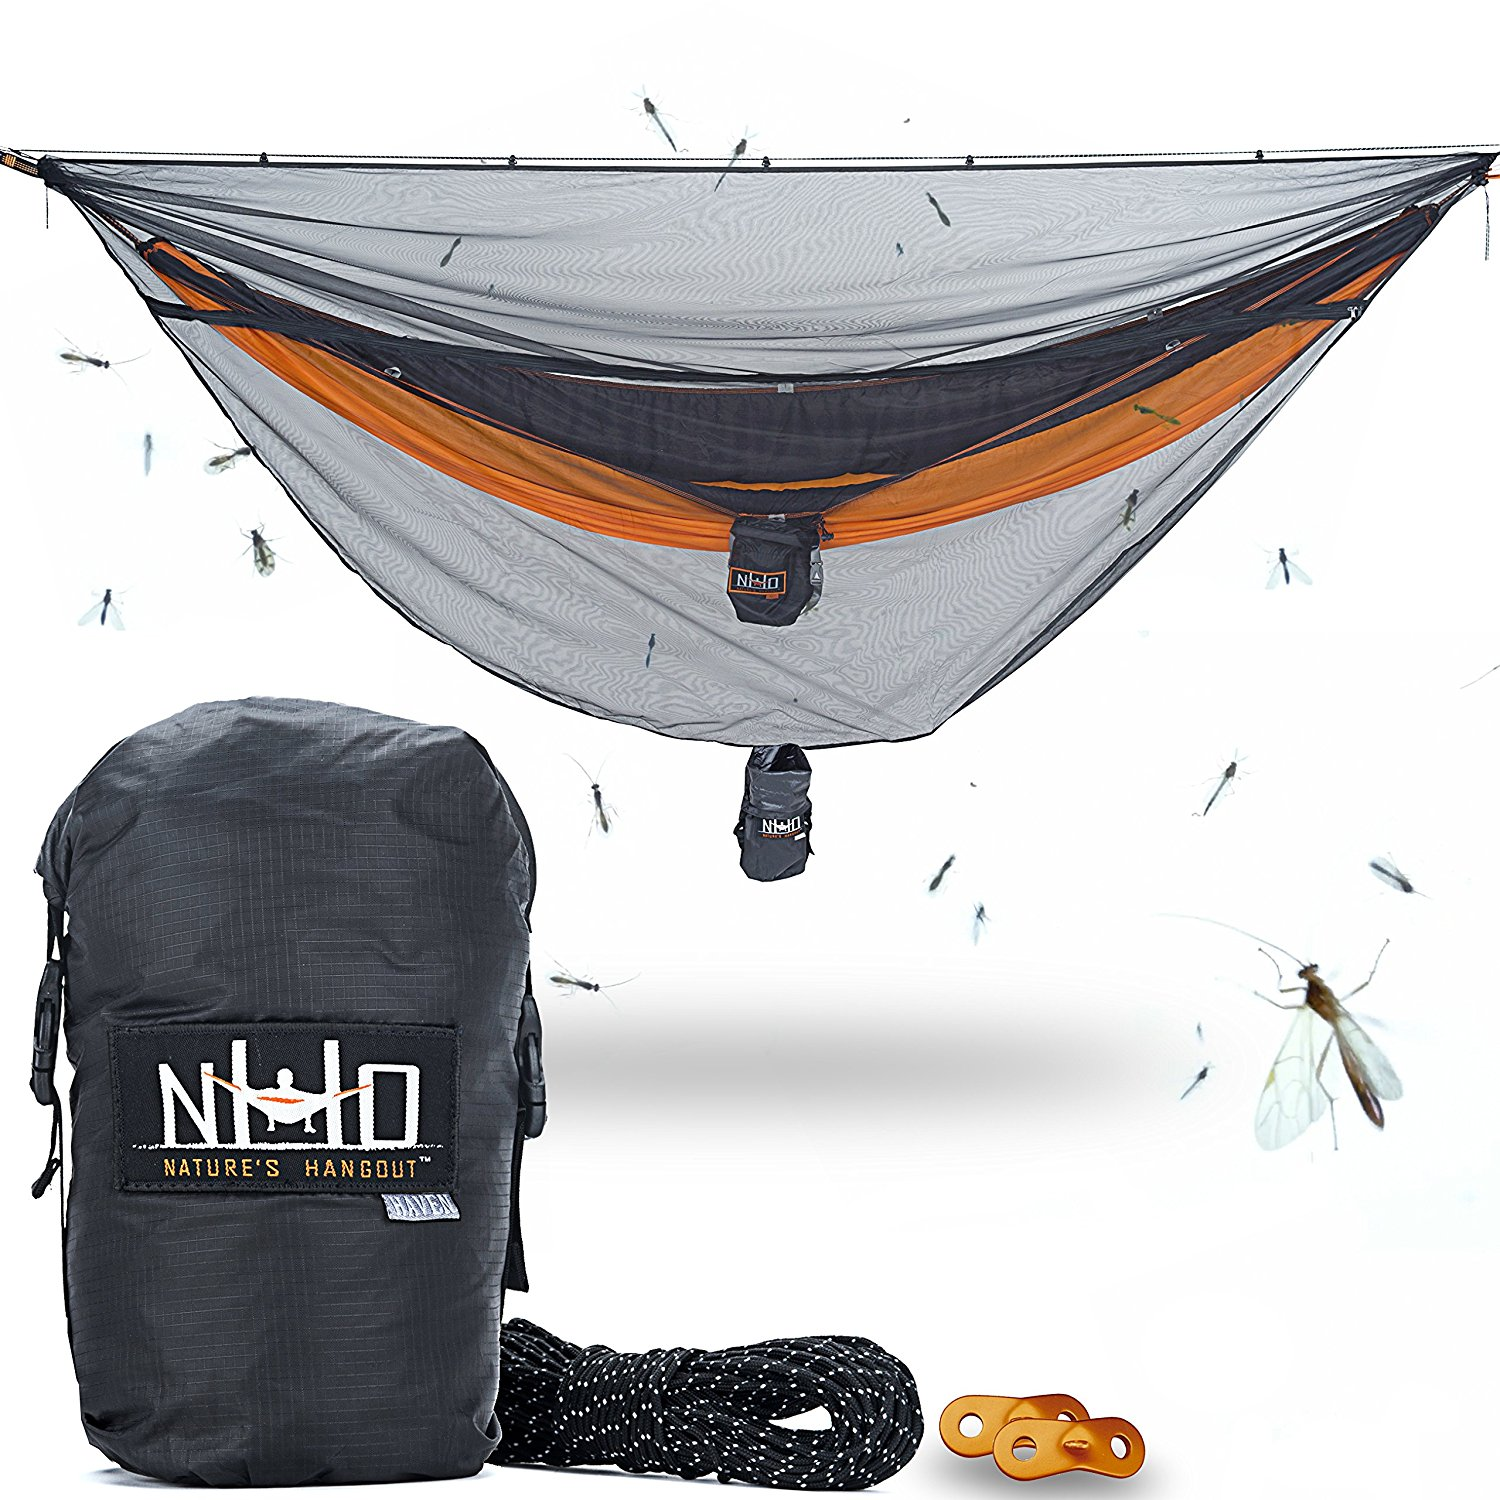 Natures Hangout bug net